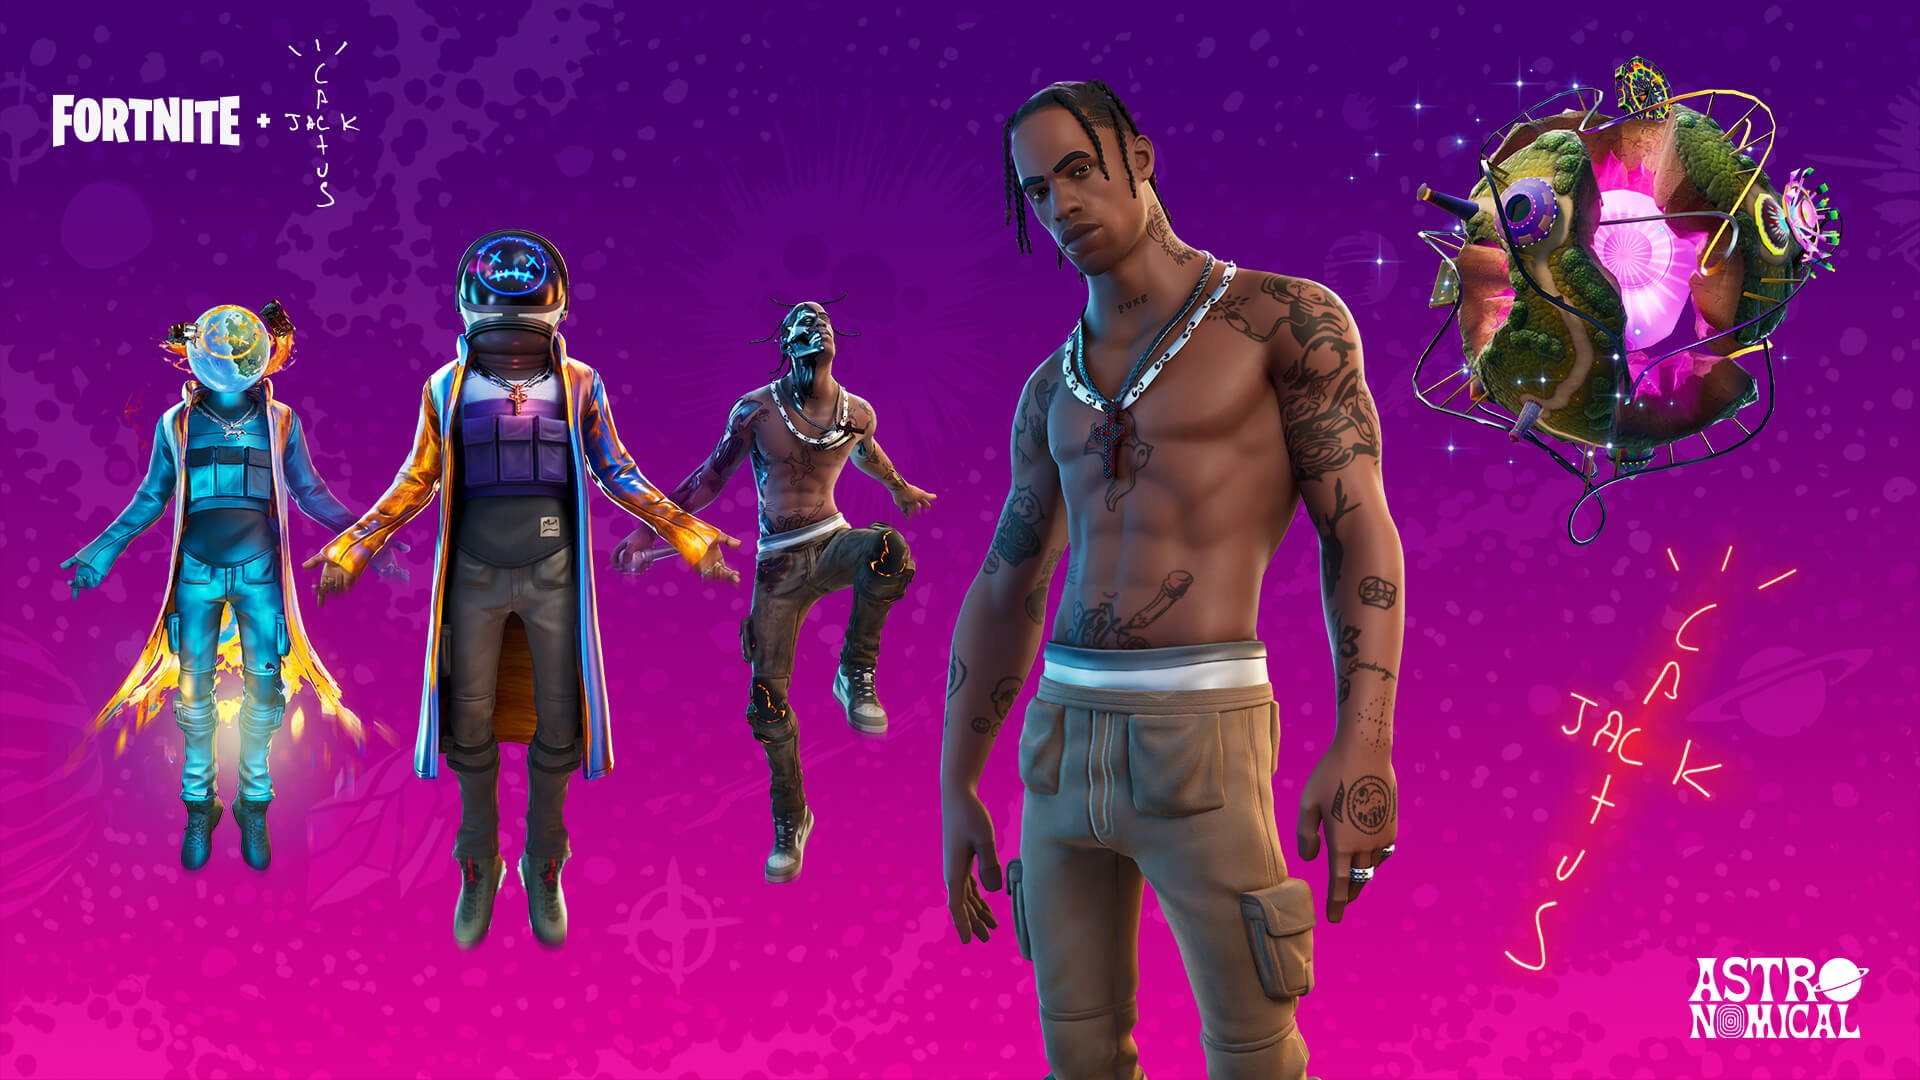 Travis Scott breaks Marshmello's viewer record in Fortnite